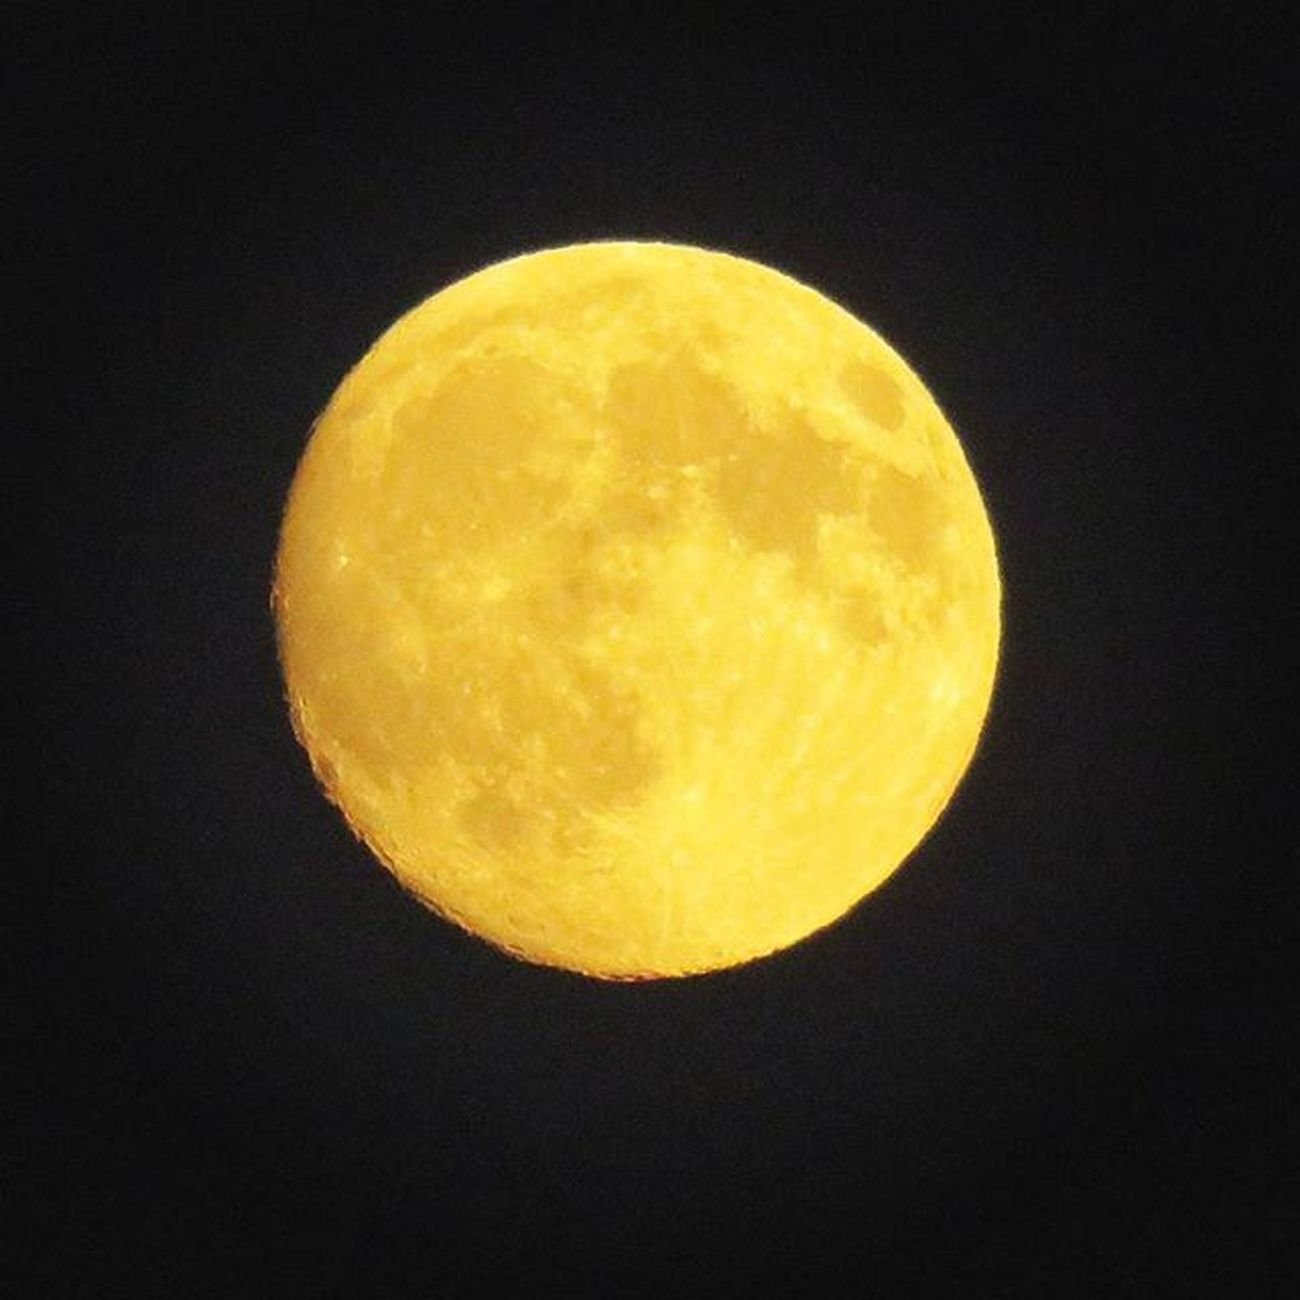 SuperLunaDeSangre SuperLuna Supermoon Luna Lua  Fotonatural Moon Thebest Nature Photography Naturelovers Art_of_nature Natural Naturaleza Instantes_fotograficos University Universo Astro Astronomy Astronomia